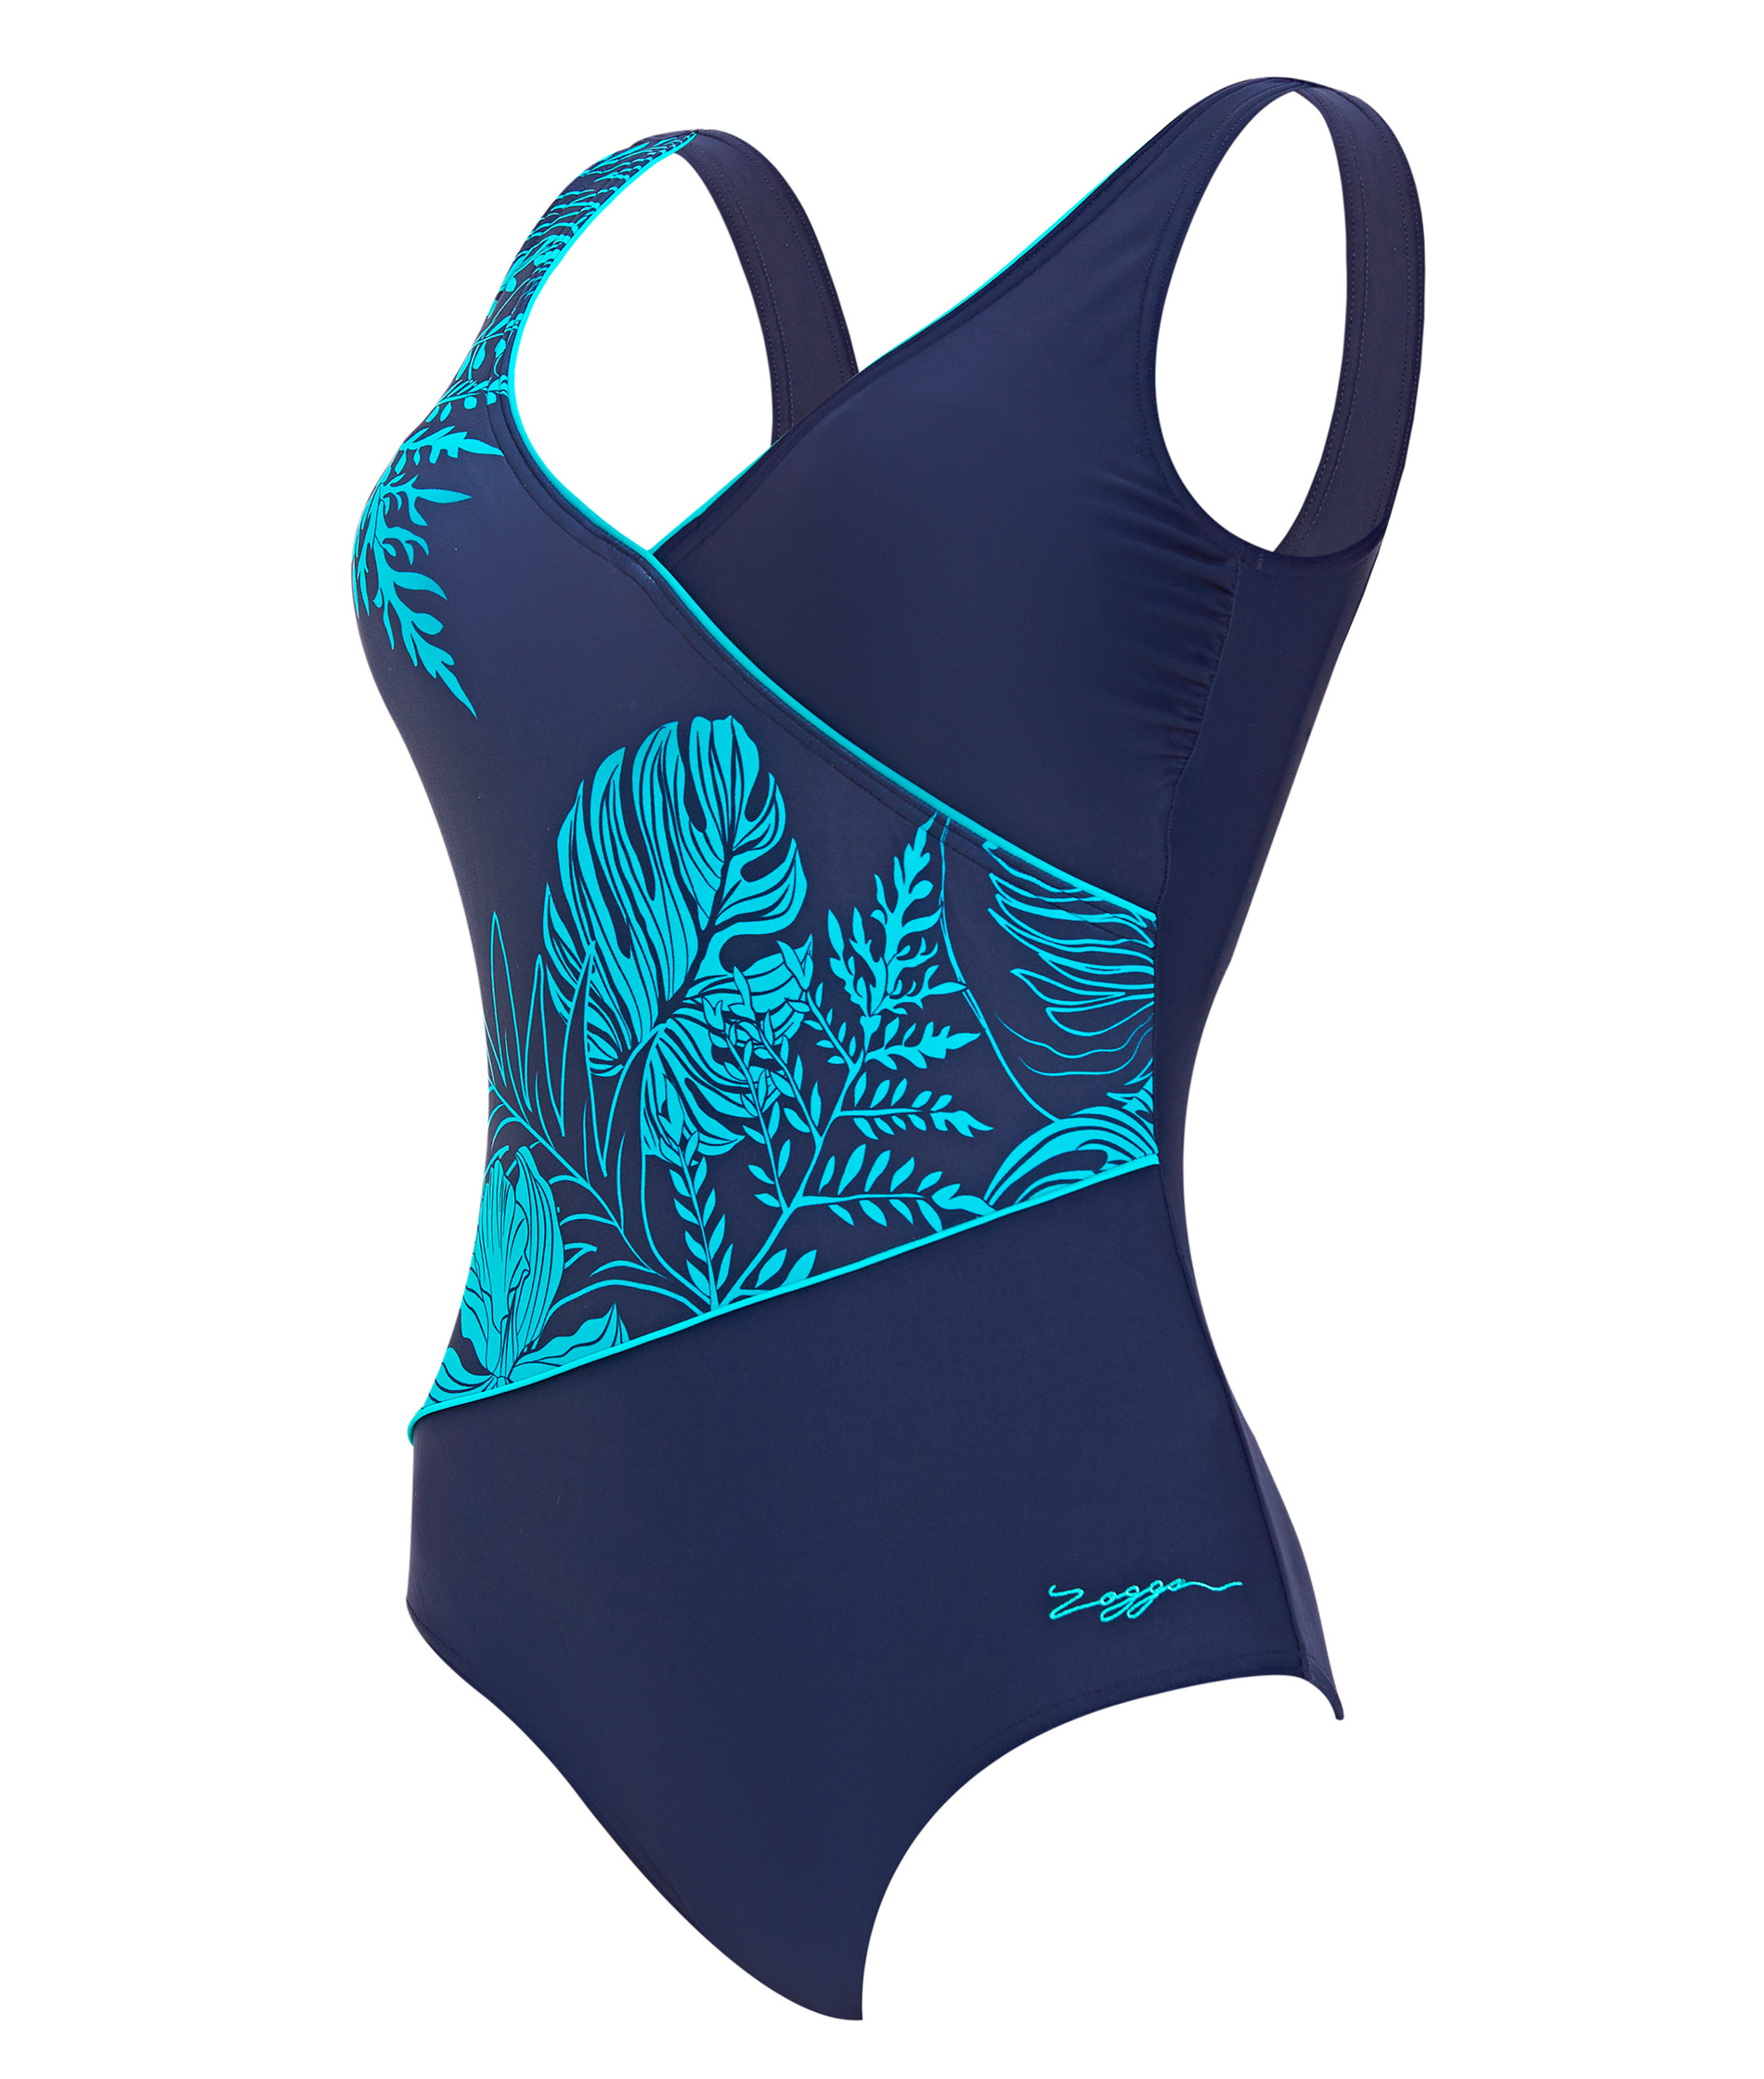 Zoggs Ladies Santorini Wrap Front Swimsuit